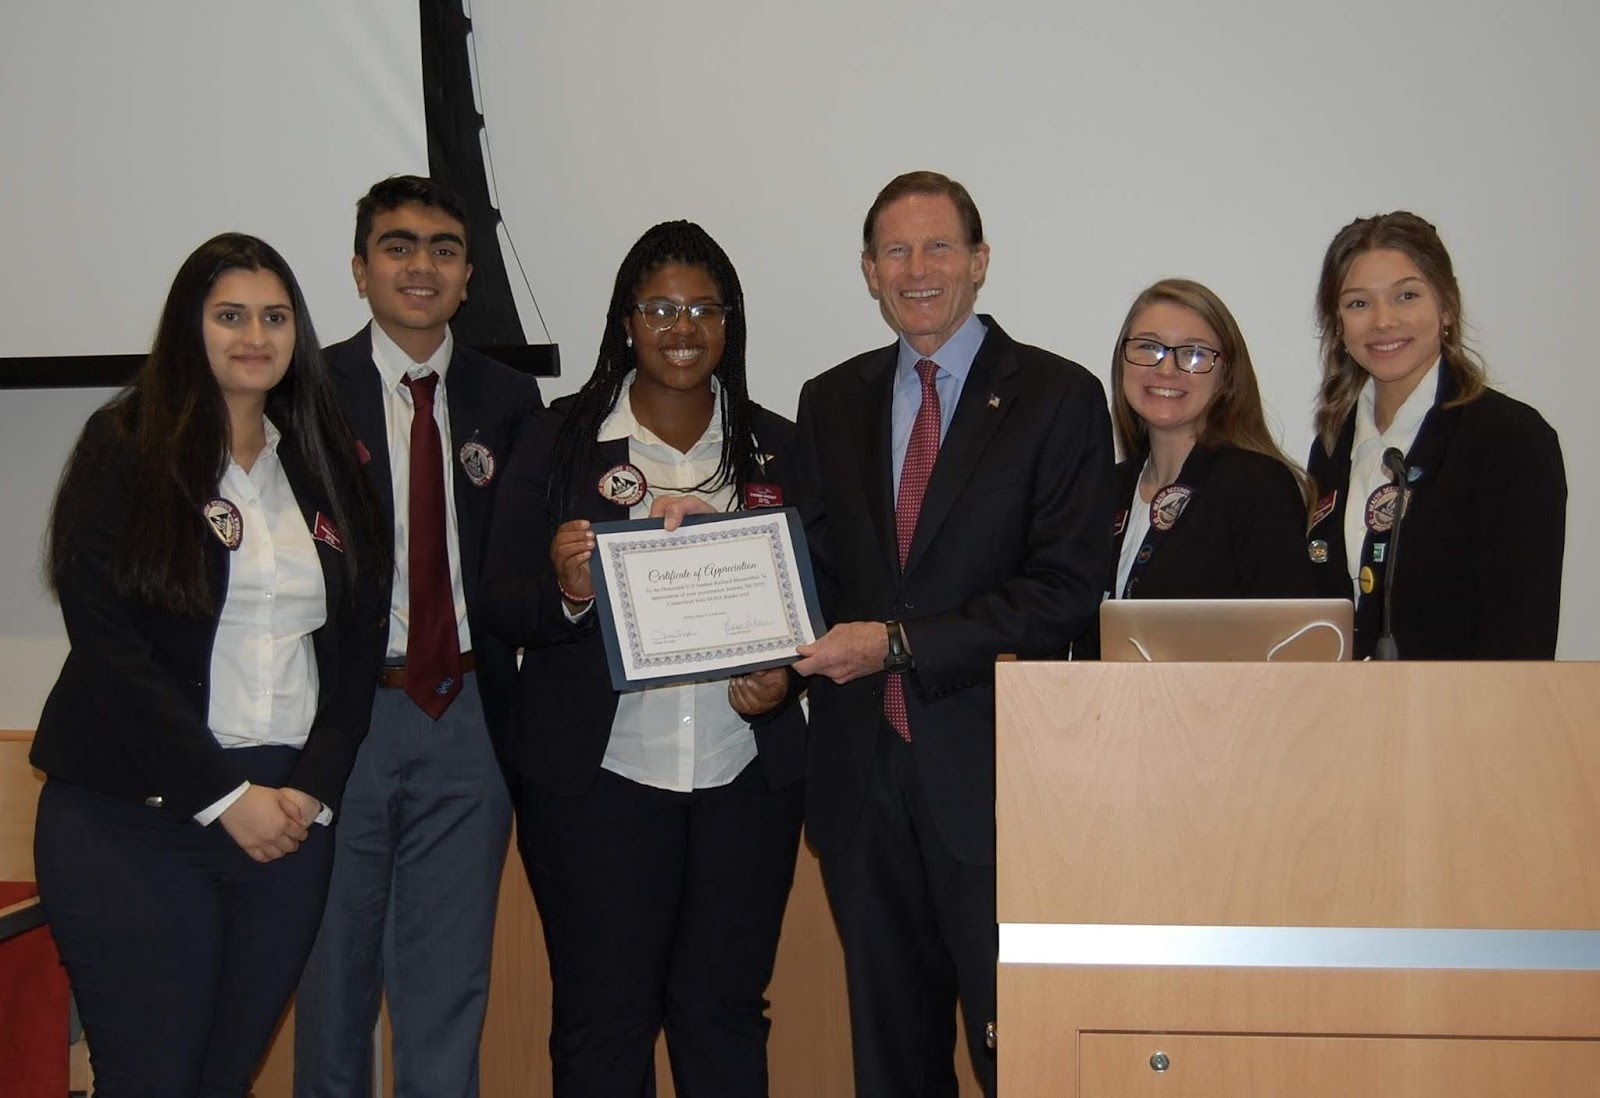 Senator Blumenthal Joins Students for Connecticut Tobacco